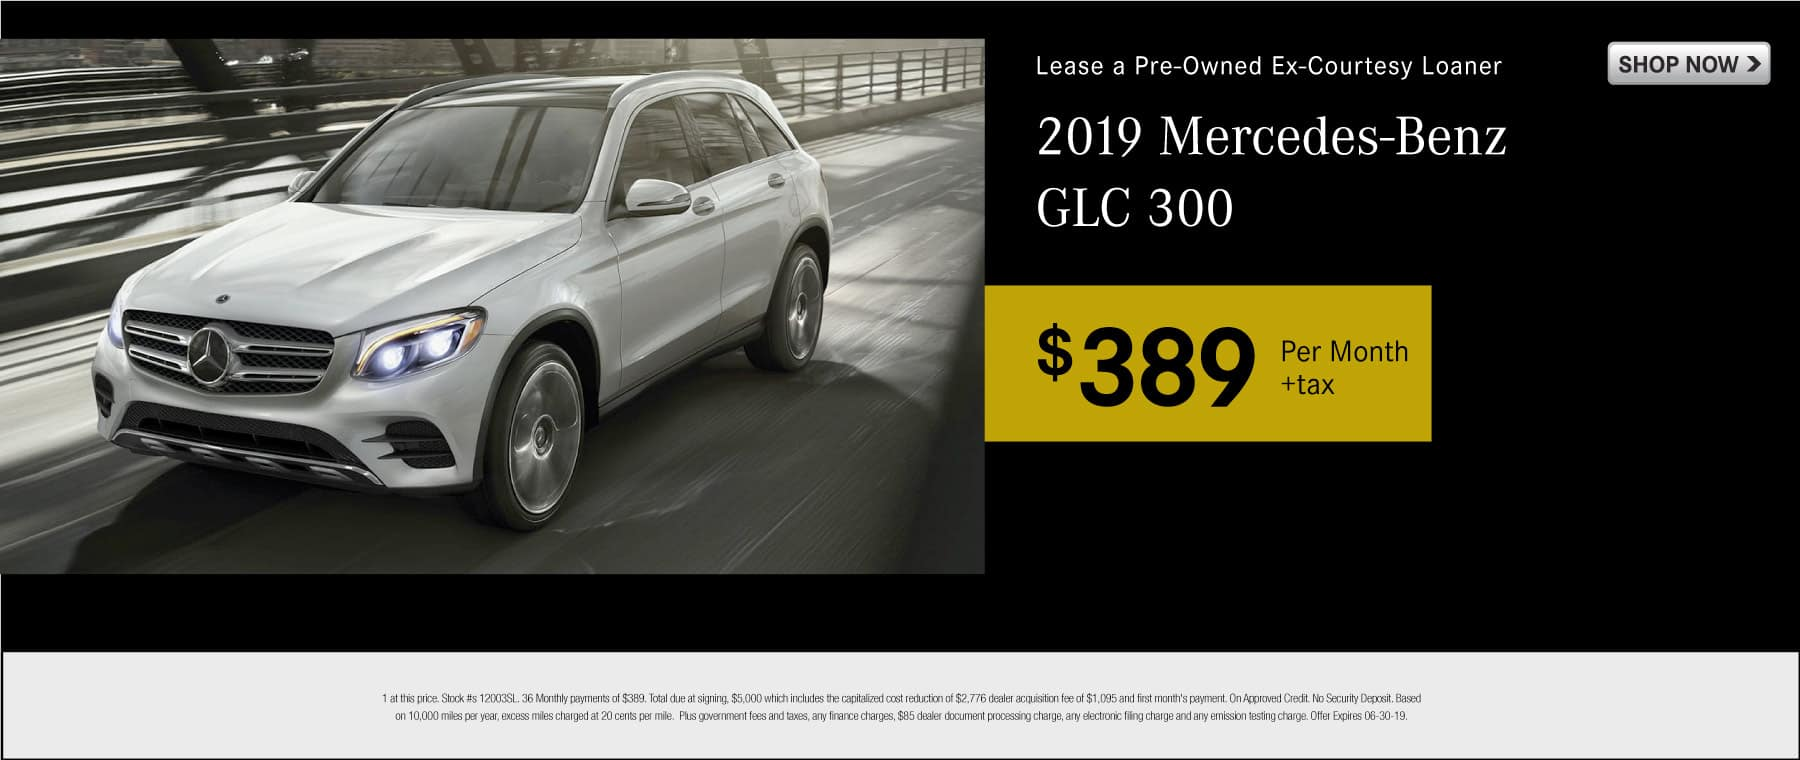 Lease a pre-owned ex-courtesy loaner 2019 Mercedes-Benz GLC 300